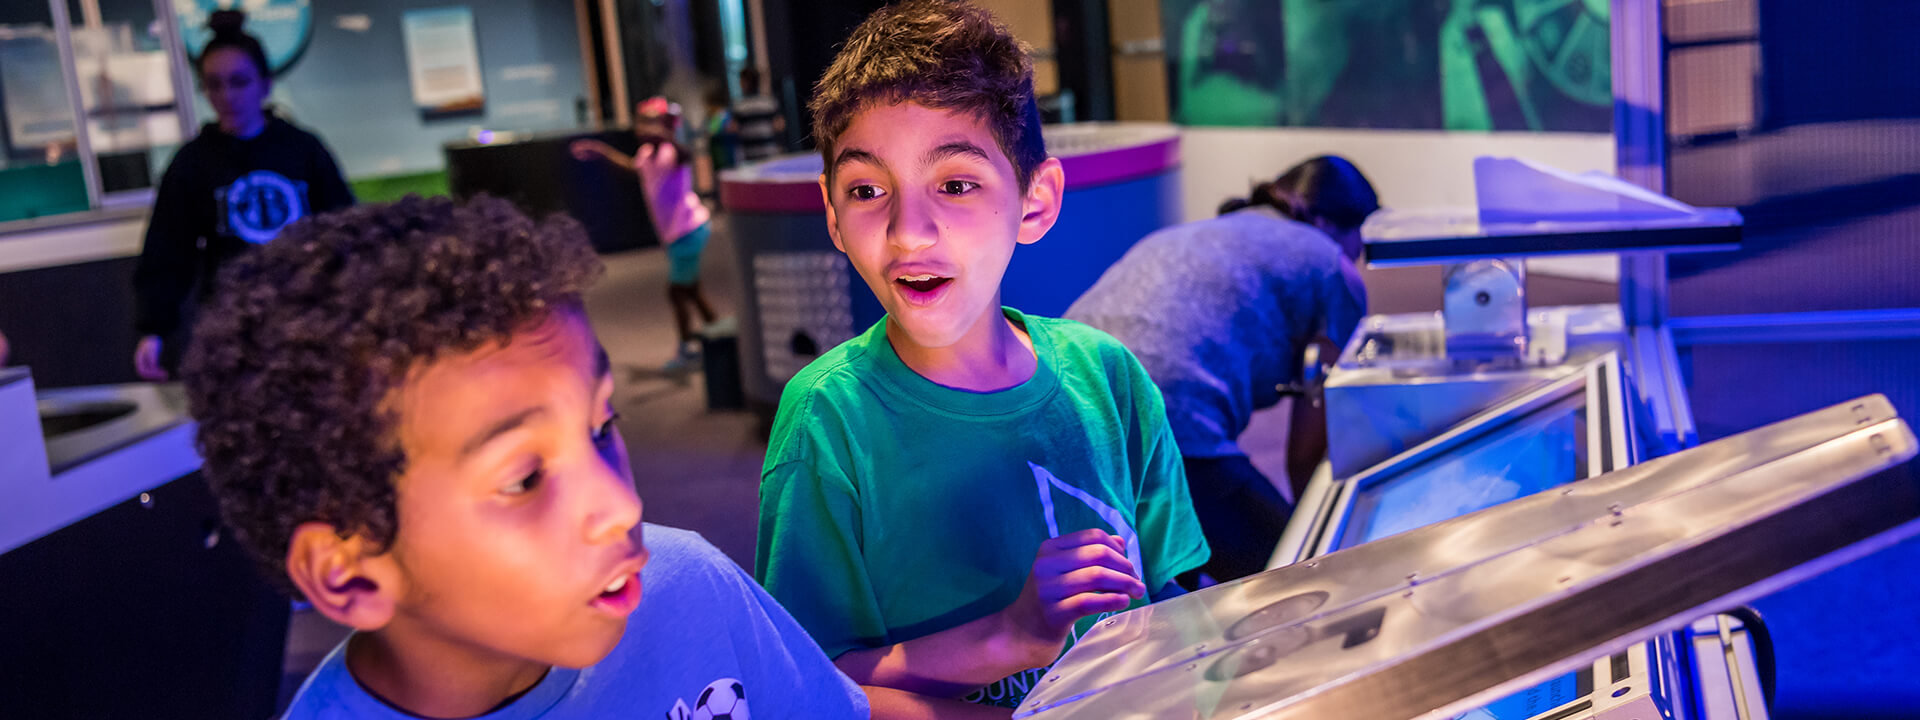 Two boys use the paper airplane launcher in the Our Planet exhibit.